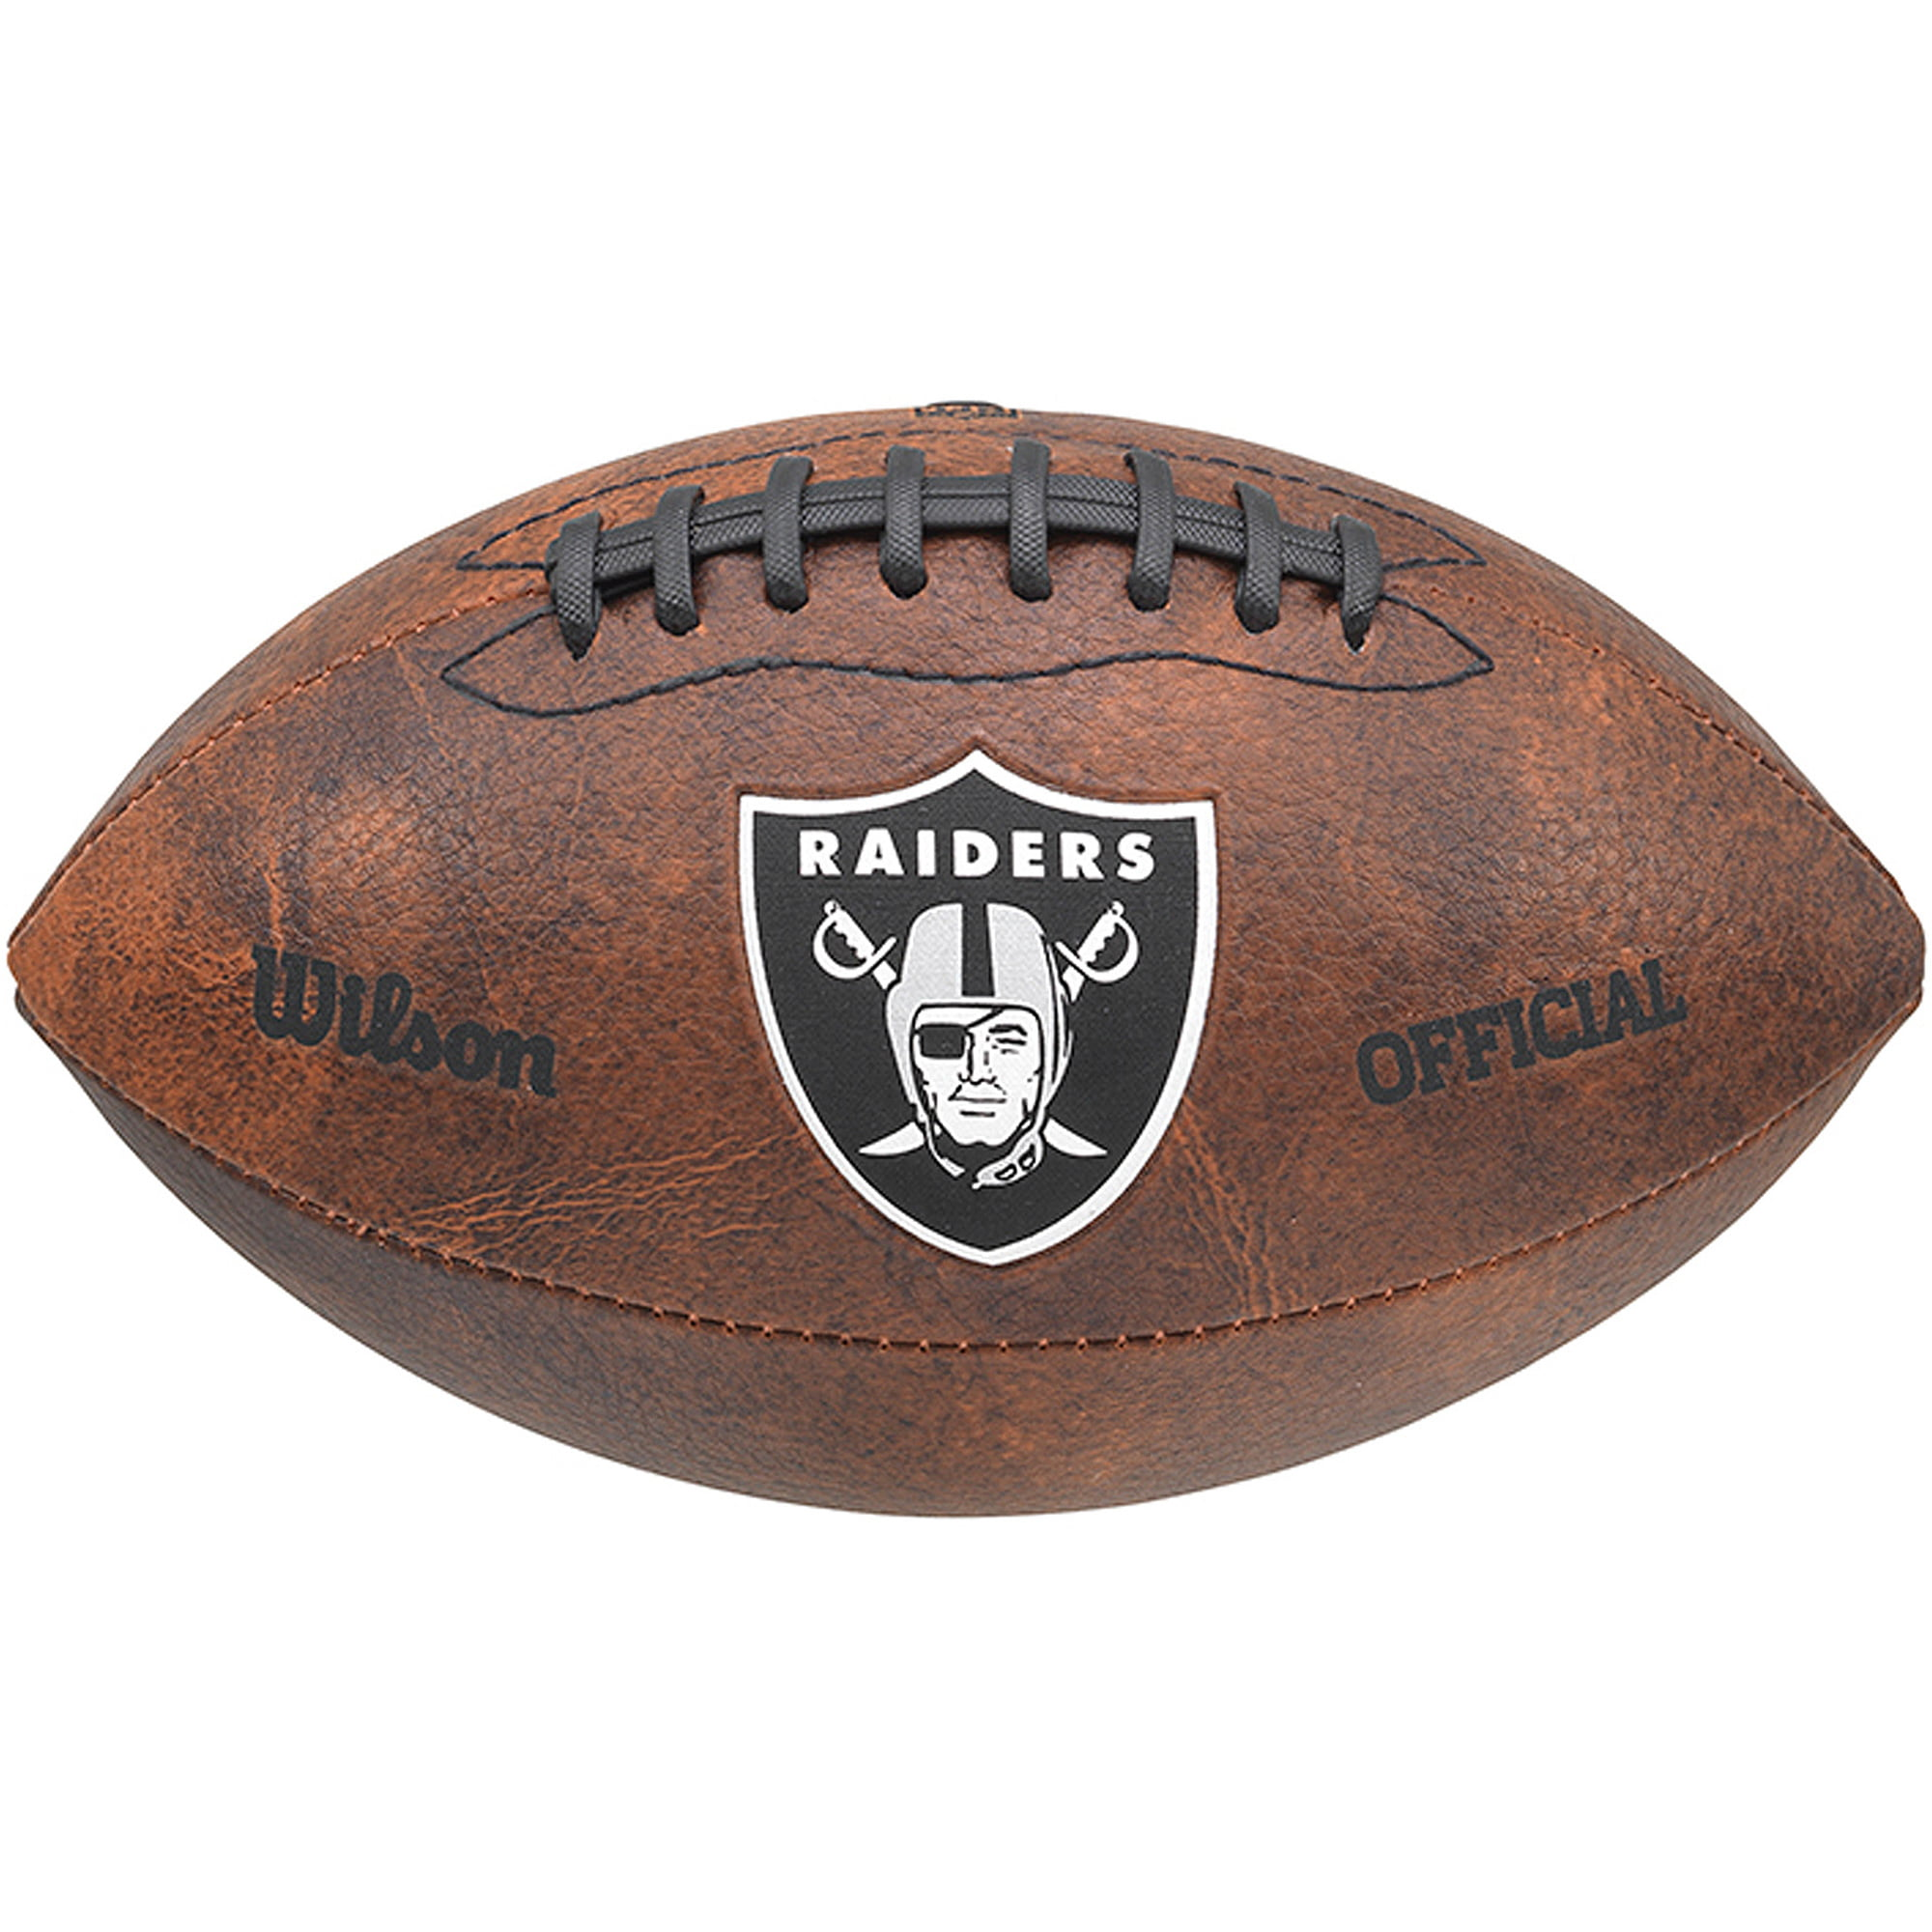 """Wilson NFL 9"""" Color Throwback Football, Oakland Raiders by Gulf Coast Sales"""